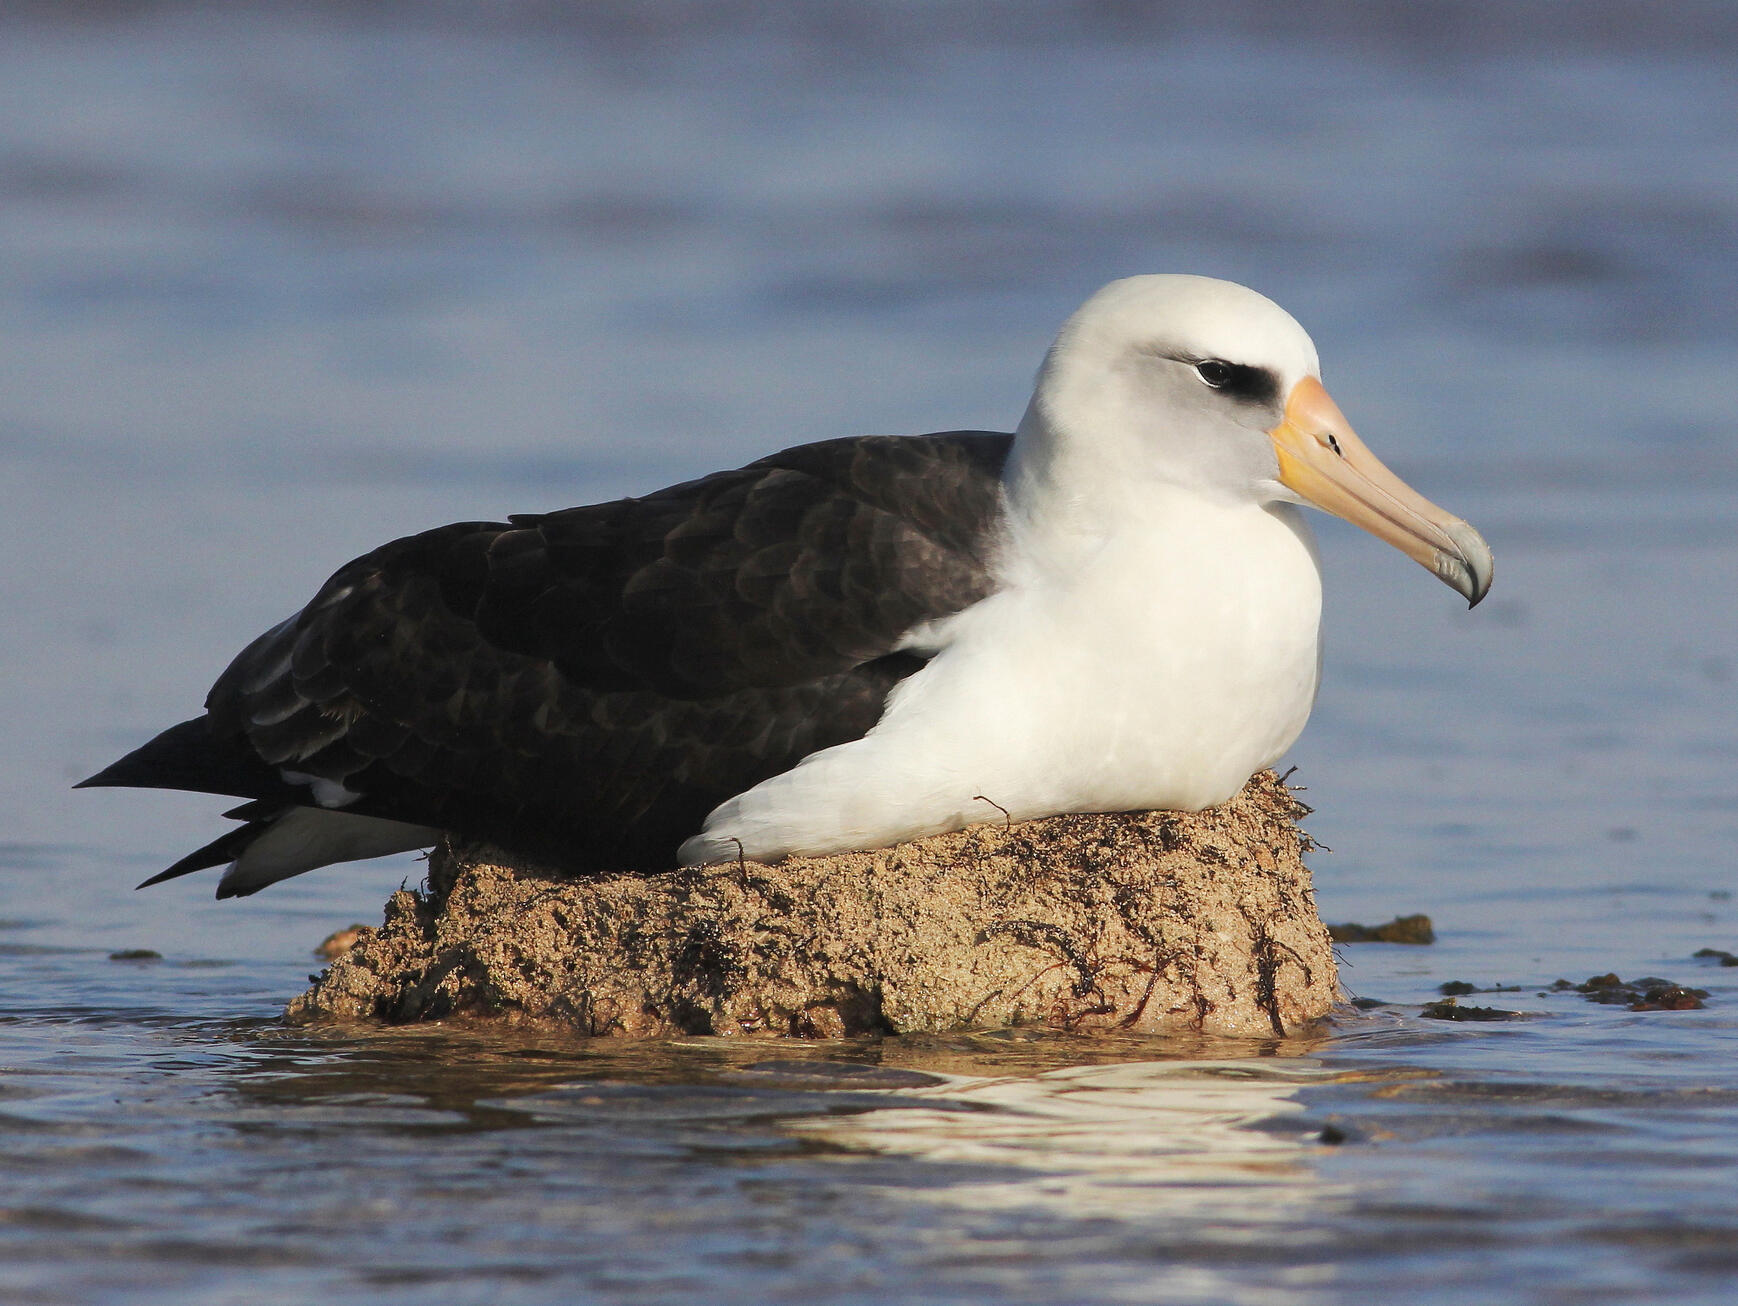 An incubating Laysan Albatross watches the lake level rise, near Papahānaumokuākea Marine National Monument, Hawaii. This nest flooded, and the egg was abandoned, days after the photo was taken in January 2012. Cameron L. Rutt